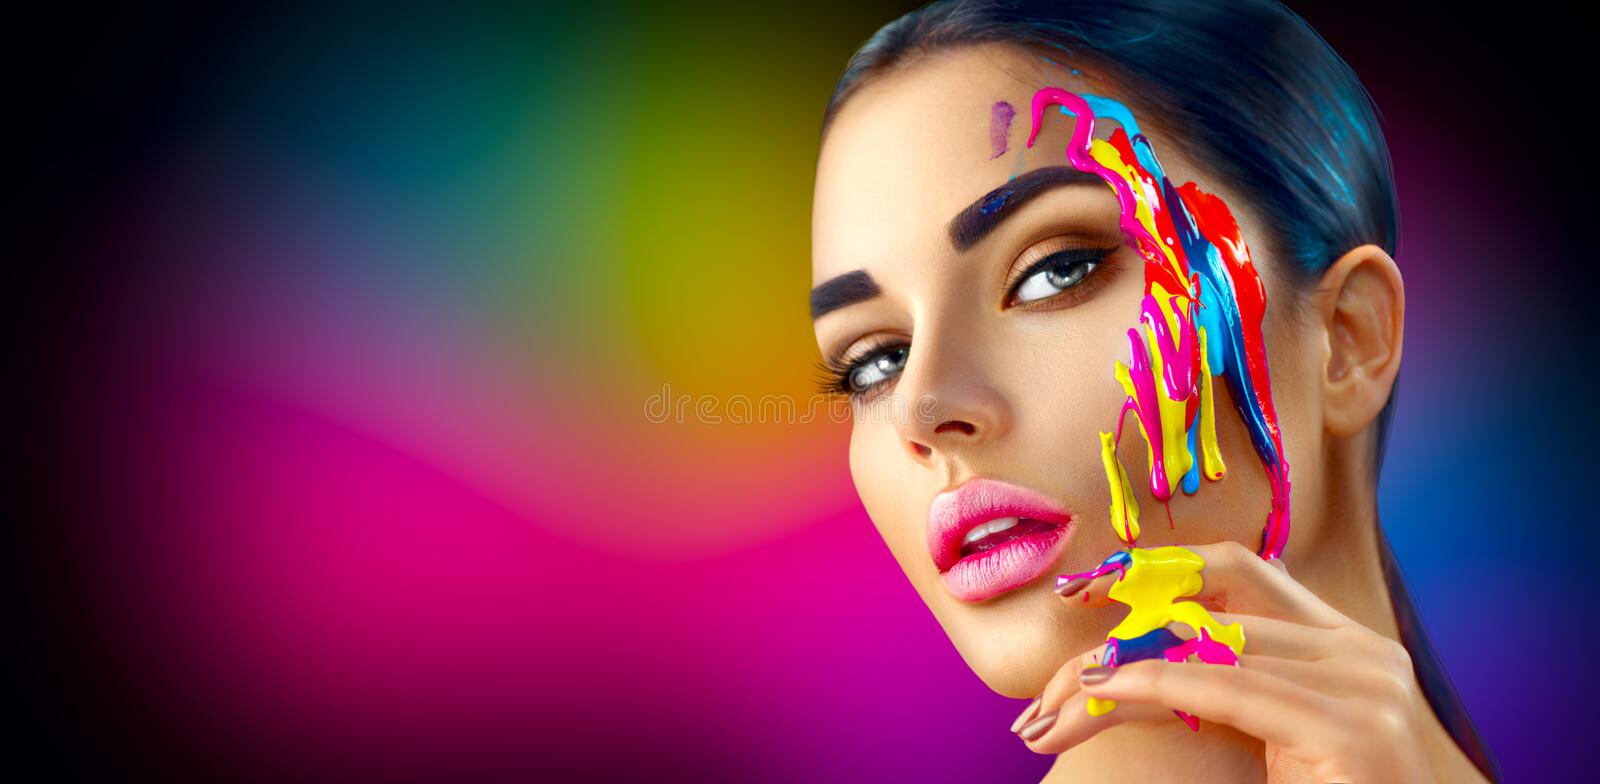 Beauty model girl with colorful paint on her face. Beautiful woman with flowing liquid paint royalty free stock photos